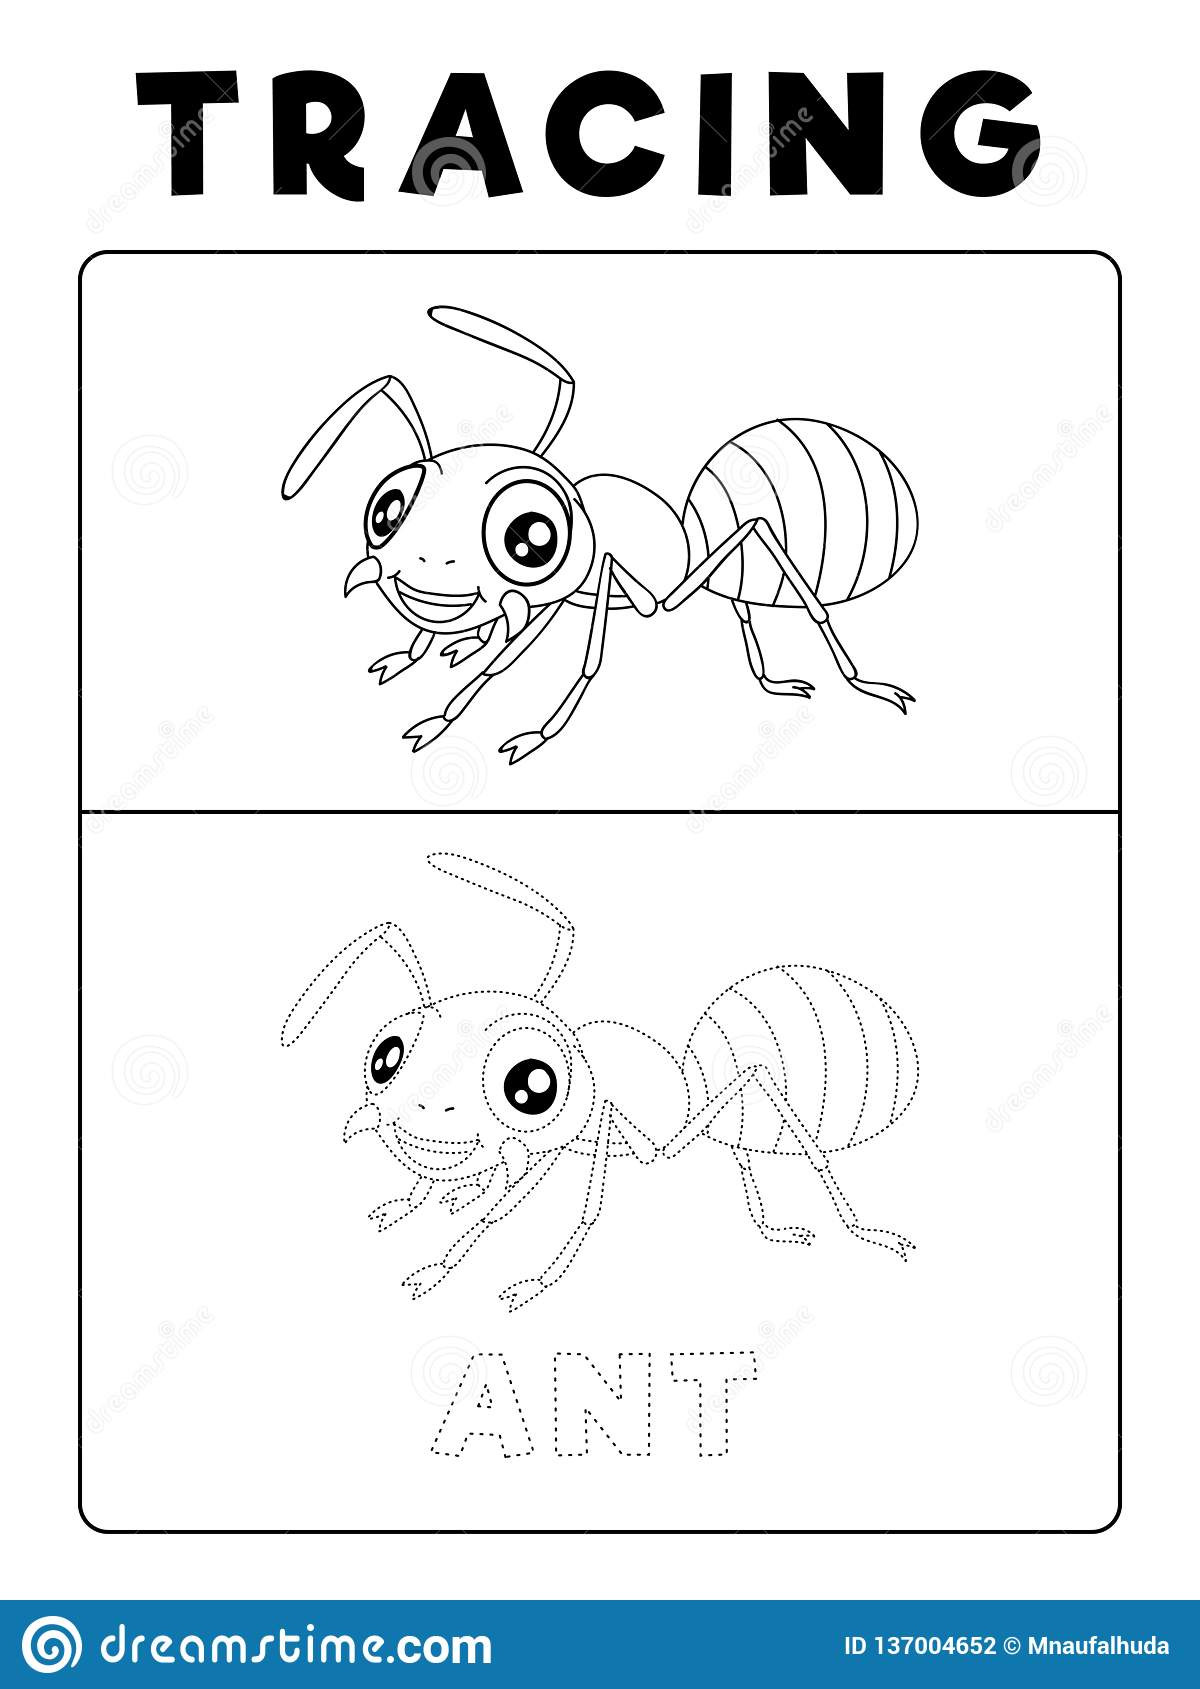 Insect Worksheets for Preschoolers Funny Ant Insect Animal Tracing Book with Example Preschool